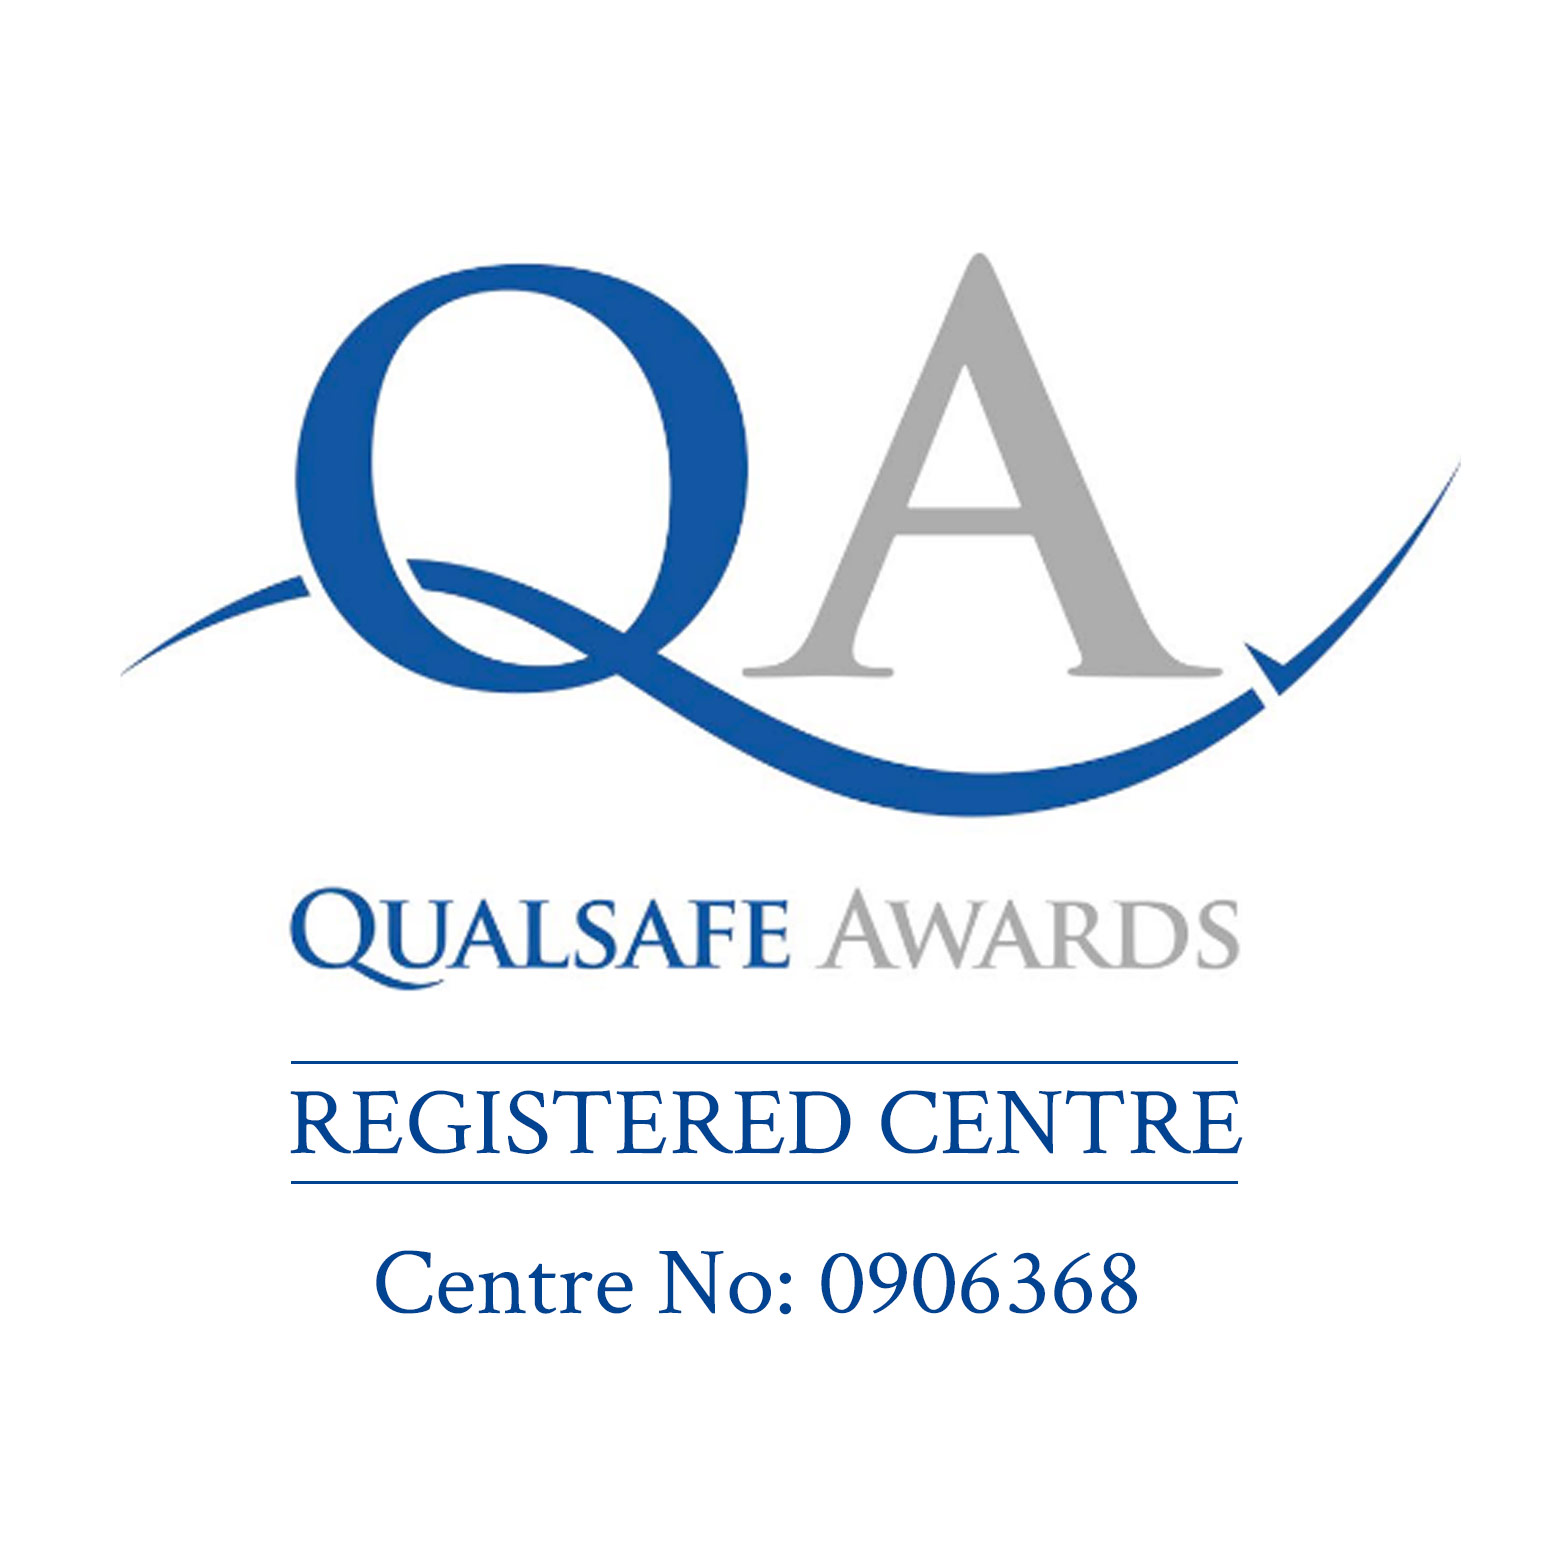 Qualsafe Awards Training West Midlands